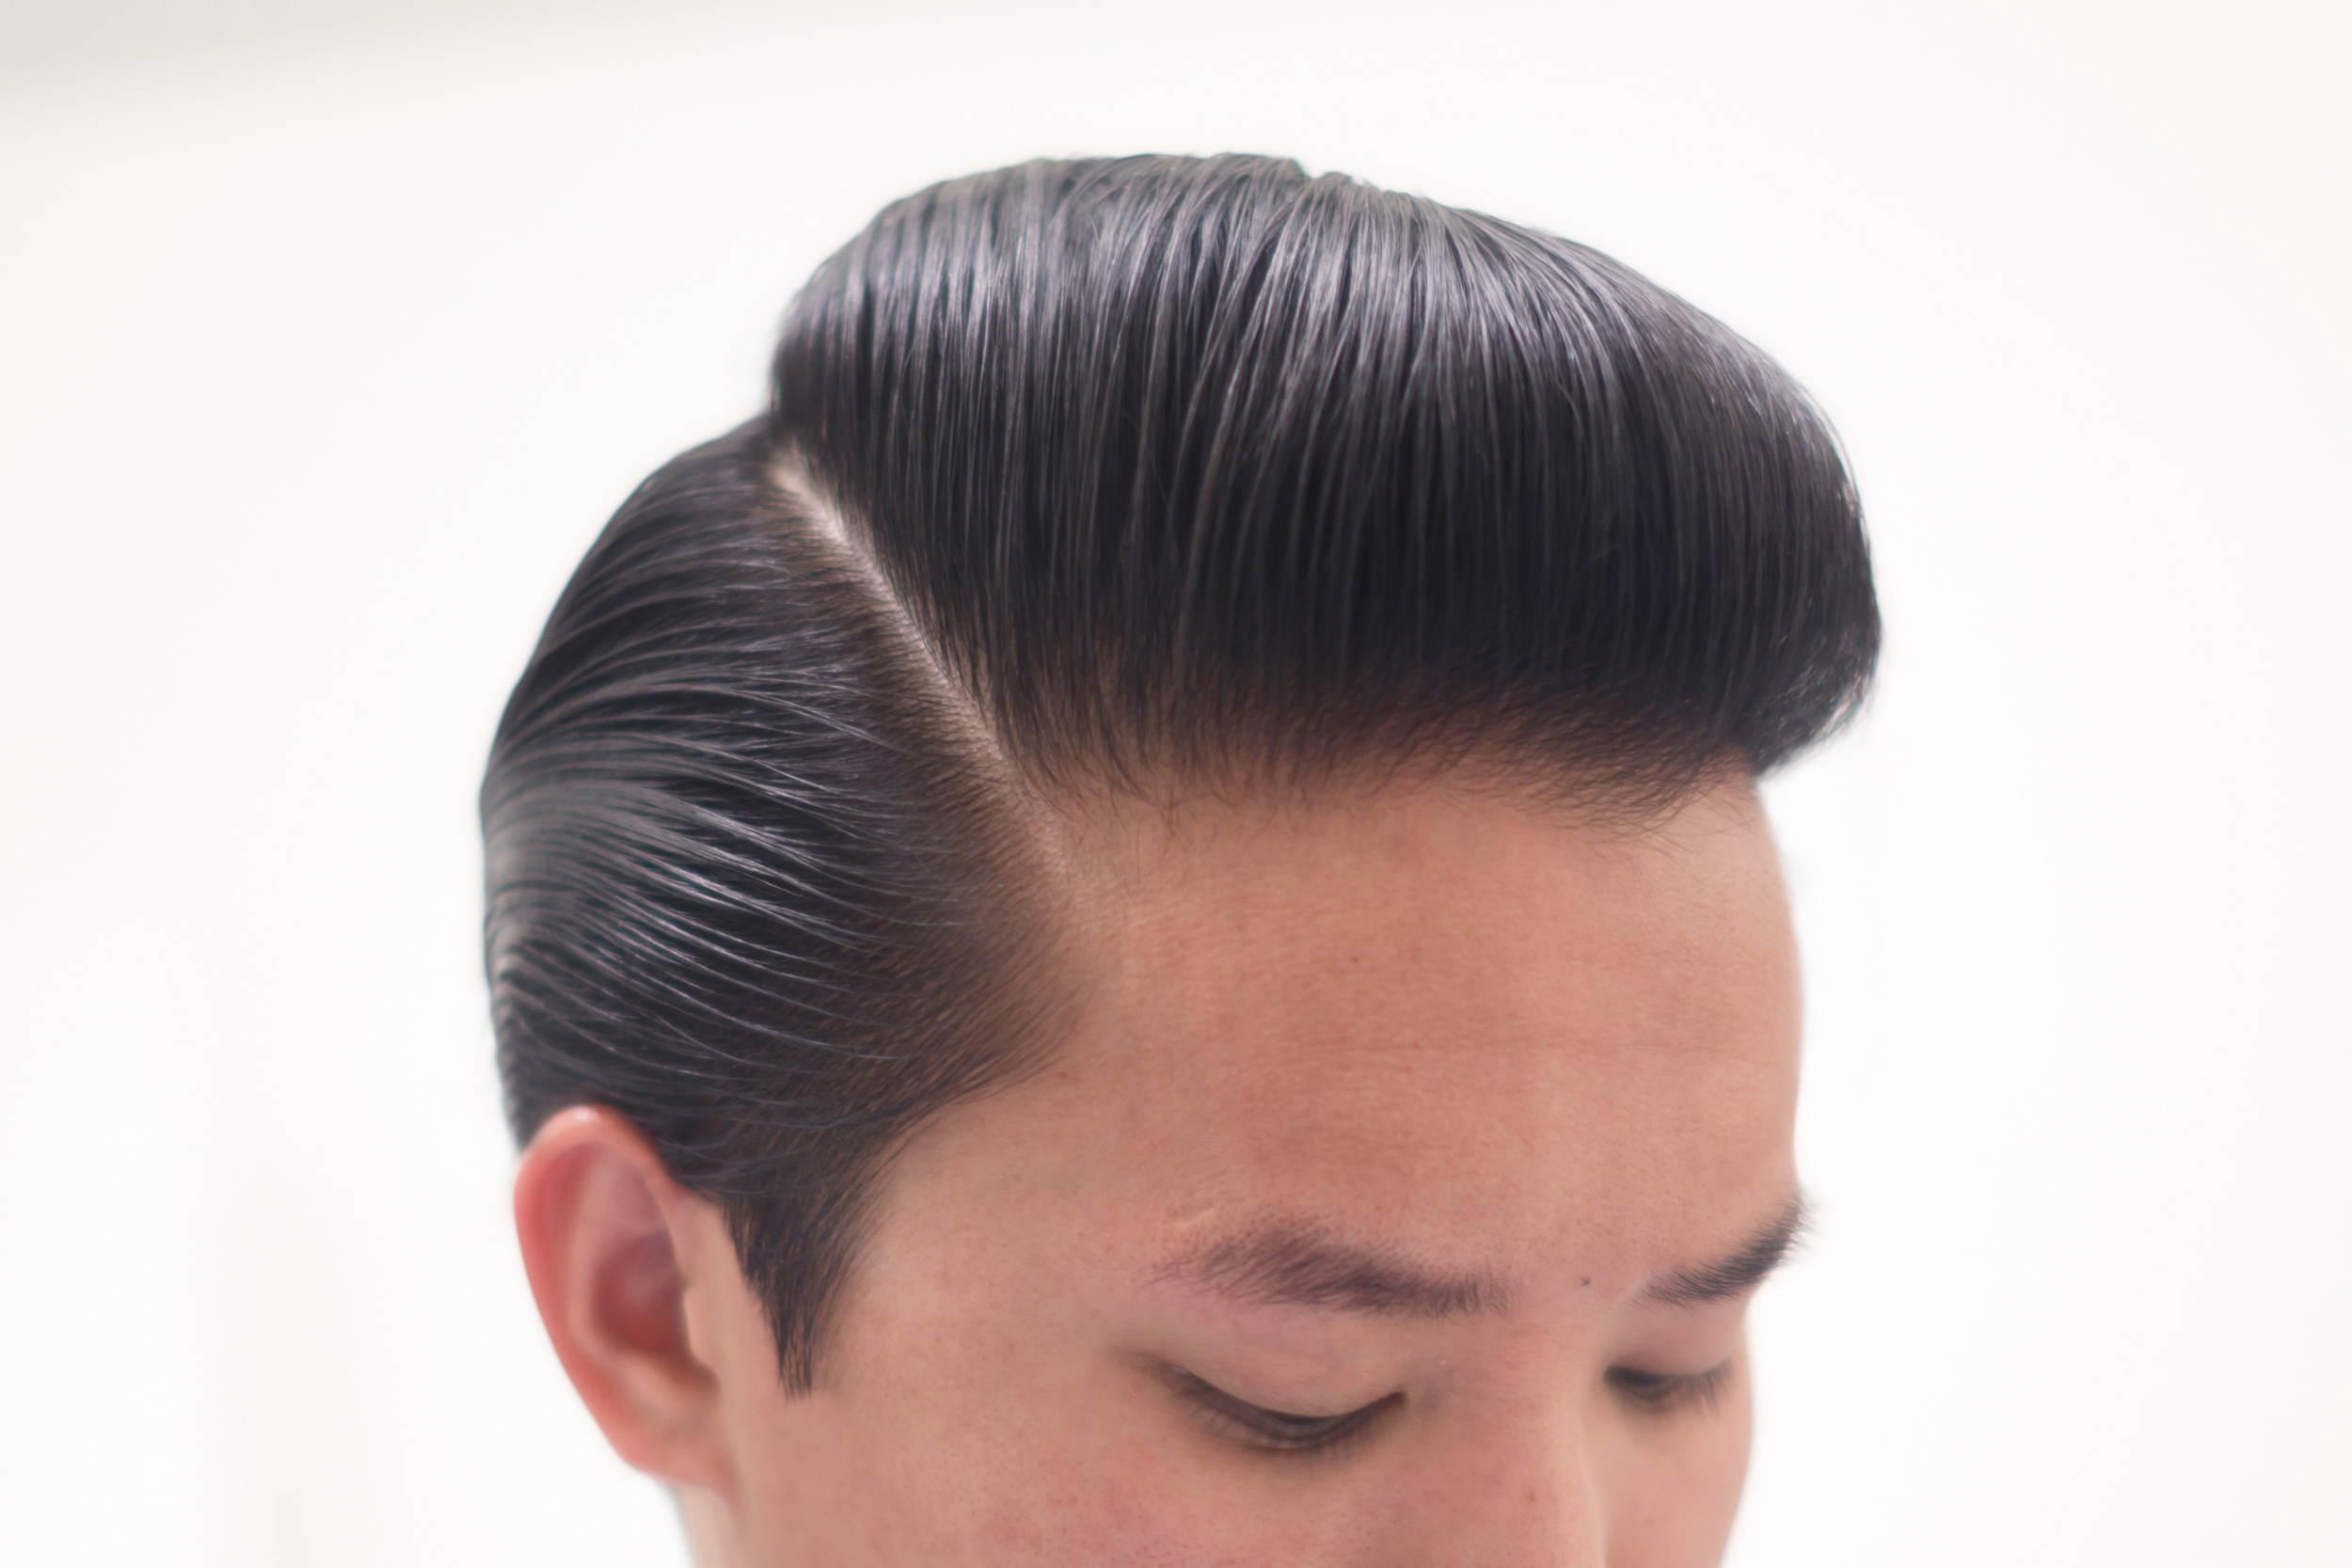 Long Full Pompadour Pomp Sides Slicked Slickback Part ThePomp